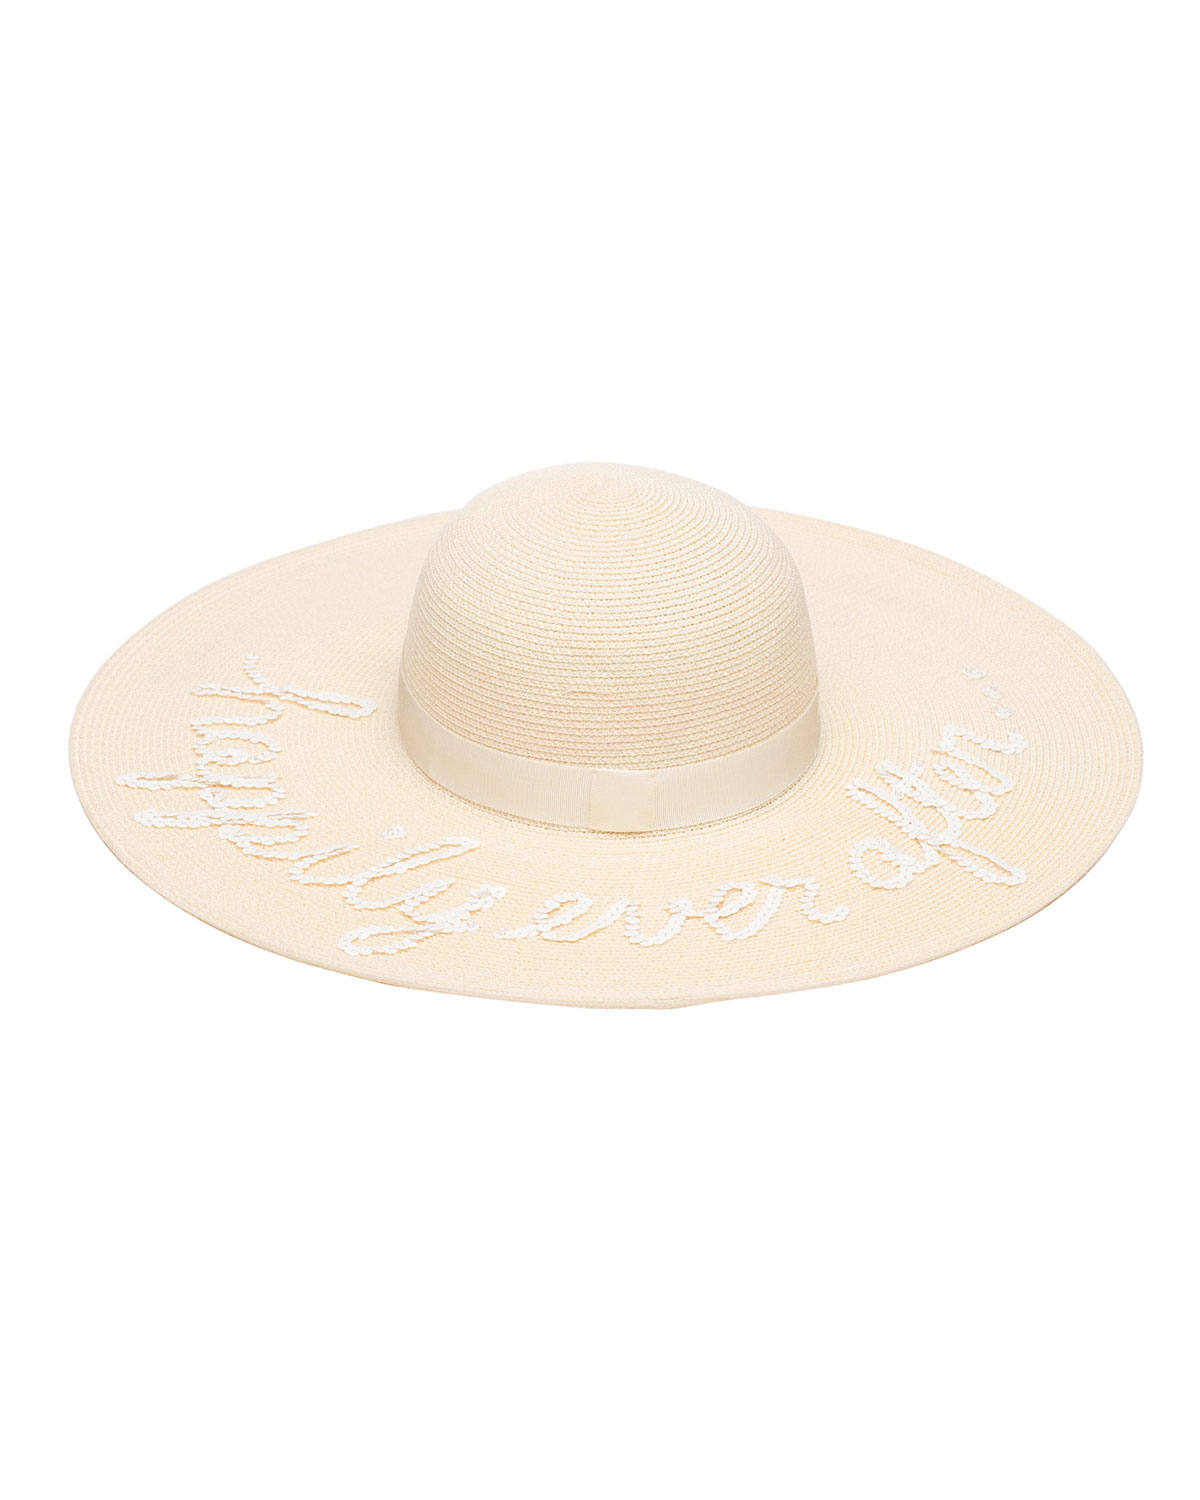 Bunny Happily Ever After Floppy Sun Hat